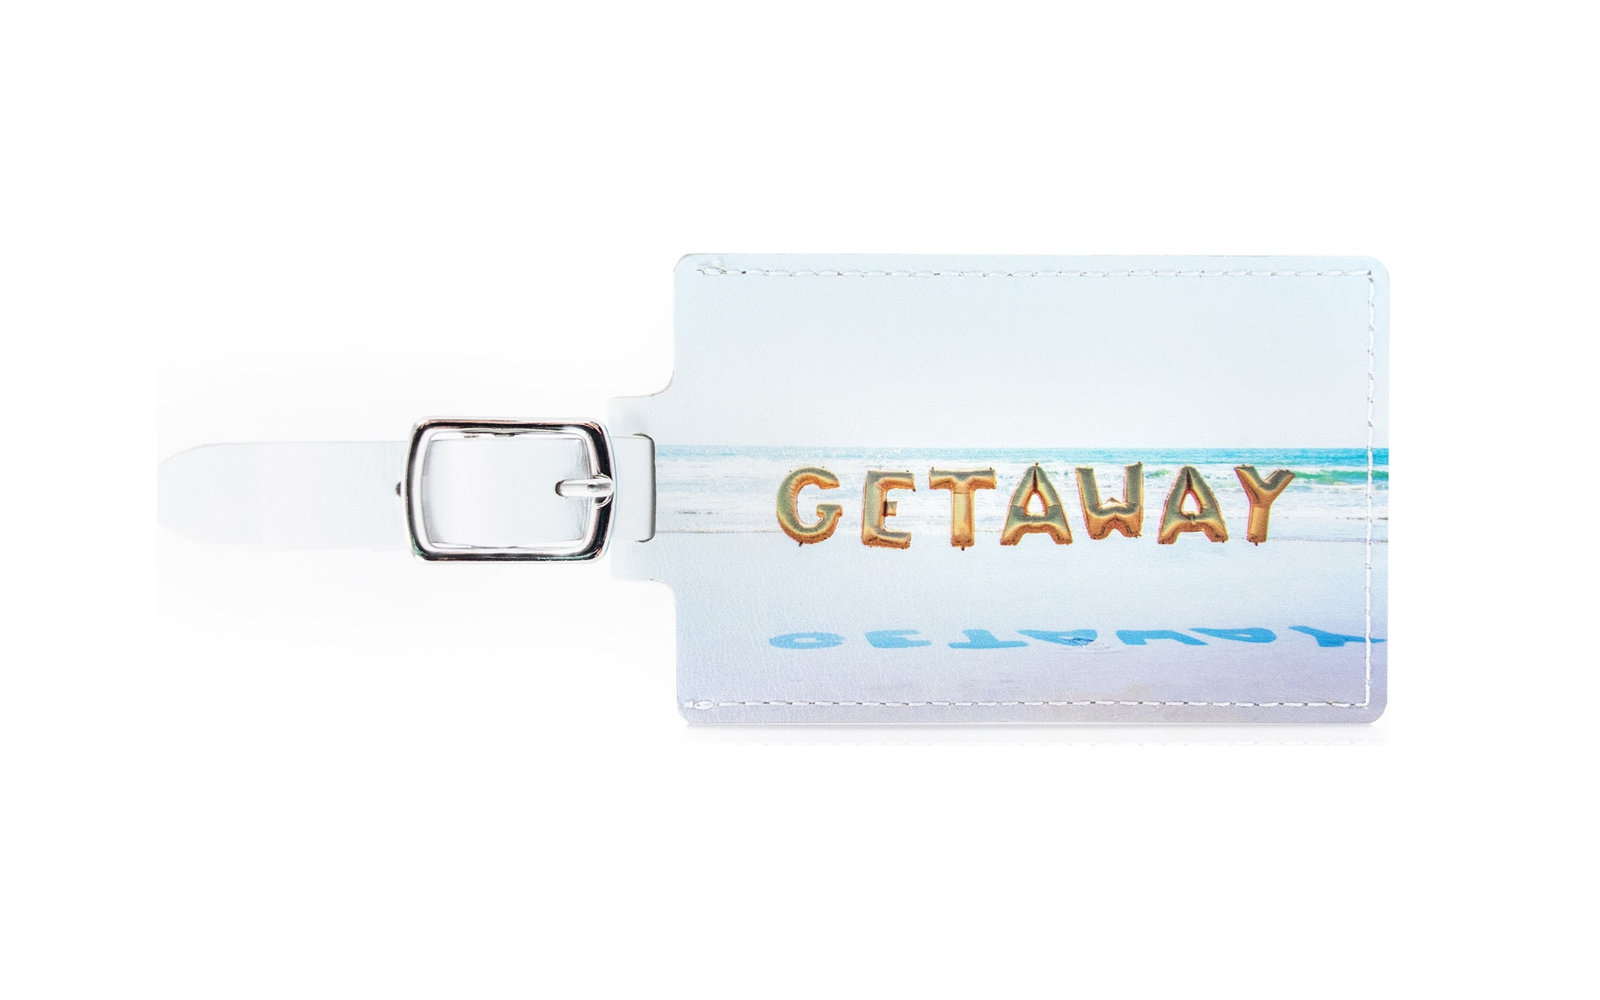 cute gray malin luggage tag